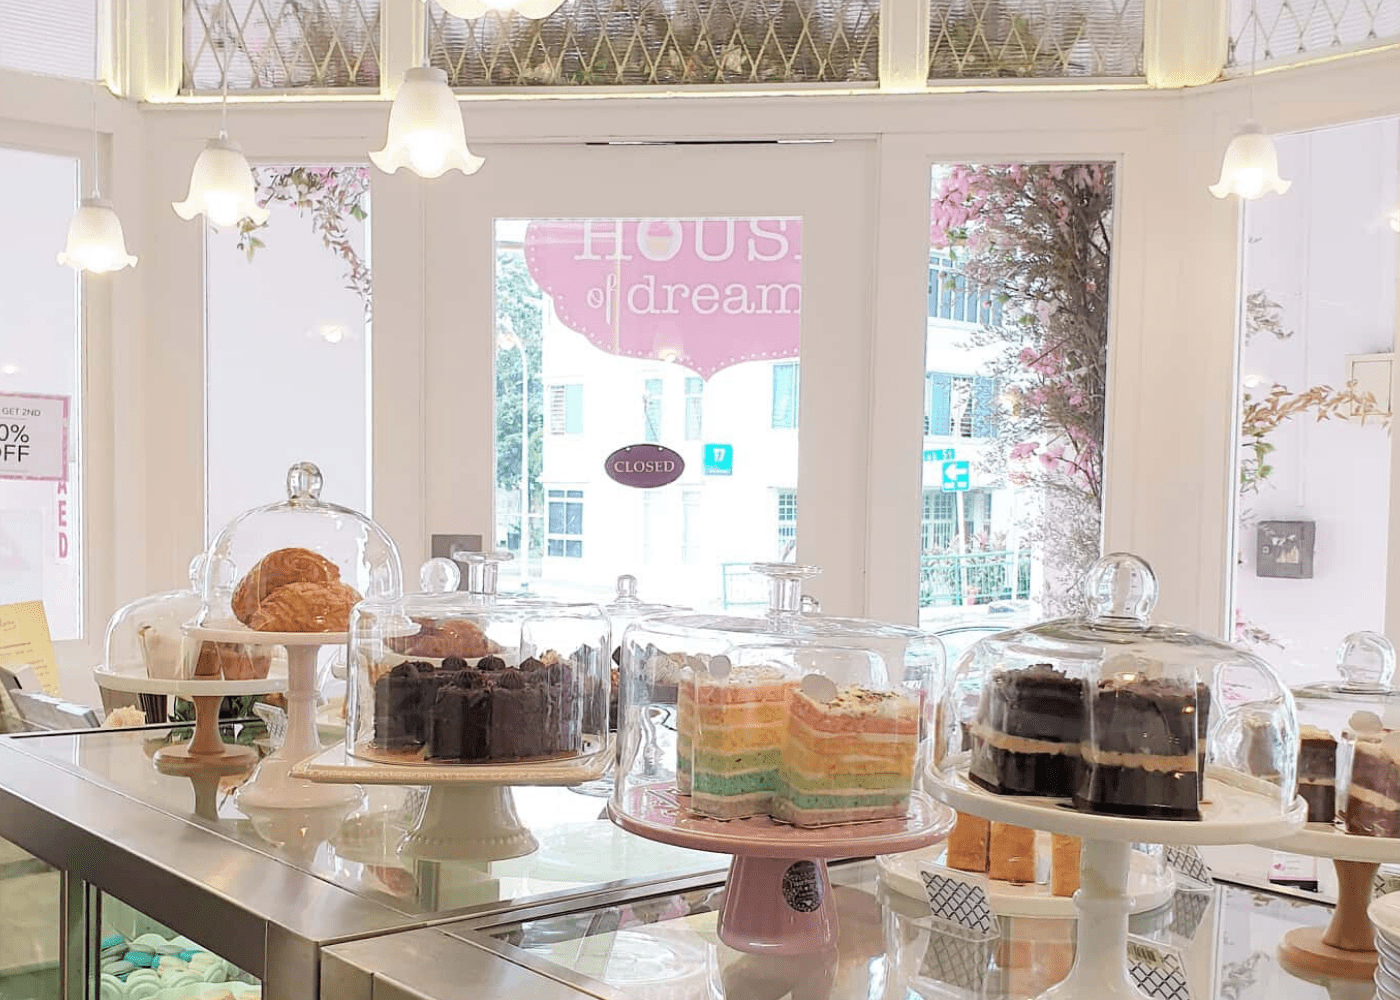 Little House of Dreams | best cupcakes in Singapore